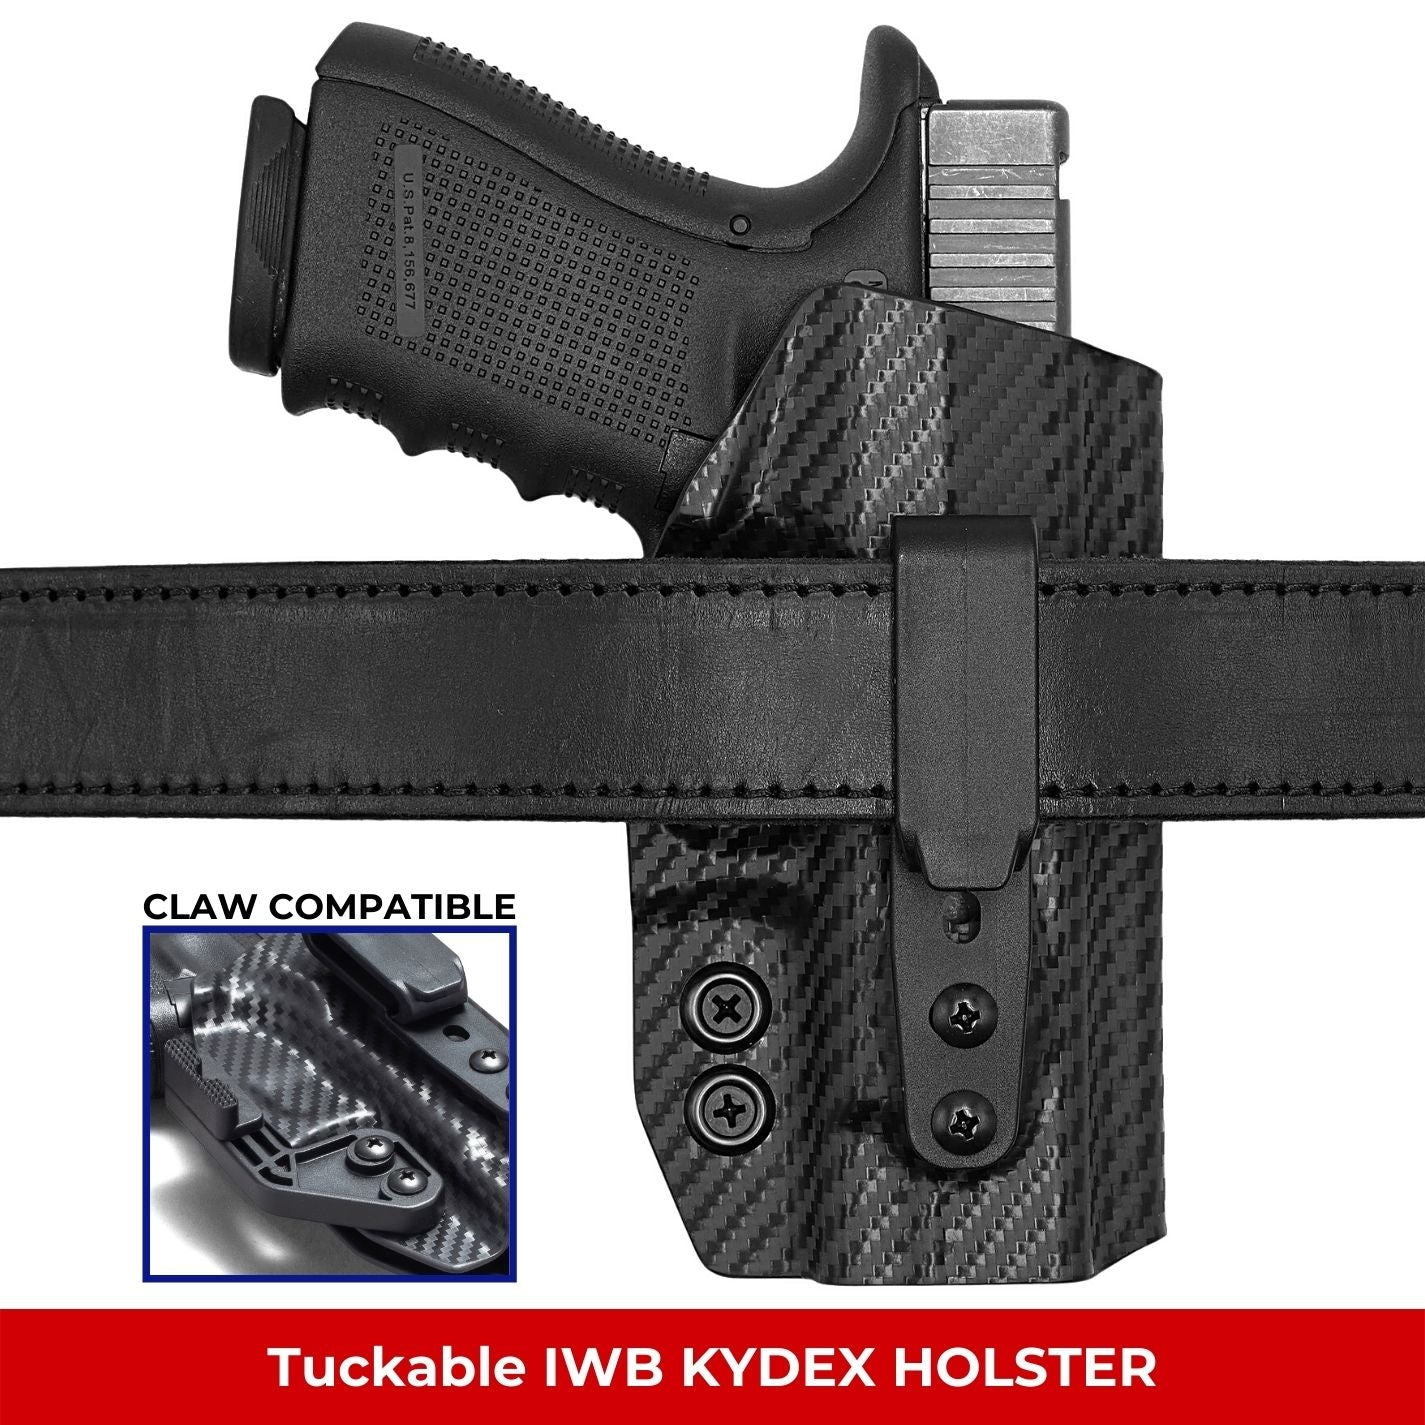 Tuckable IWB KYDEX Holster